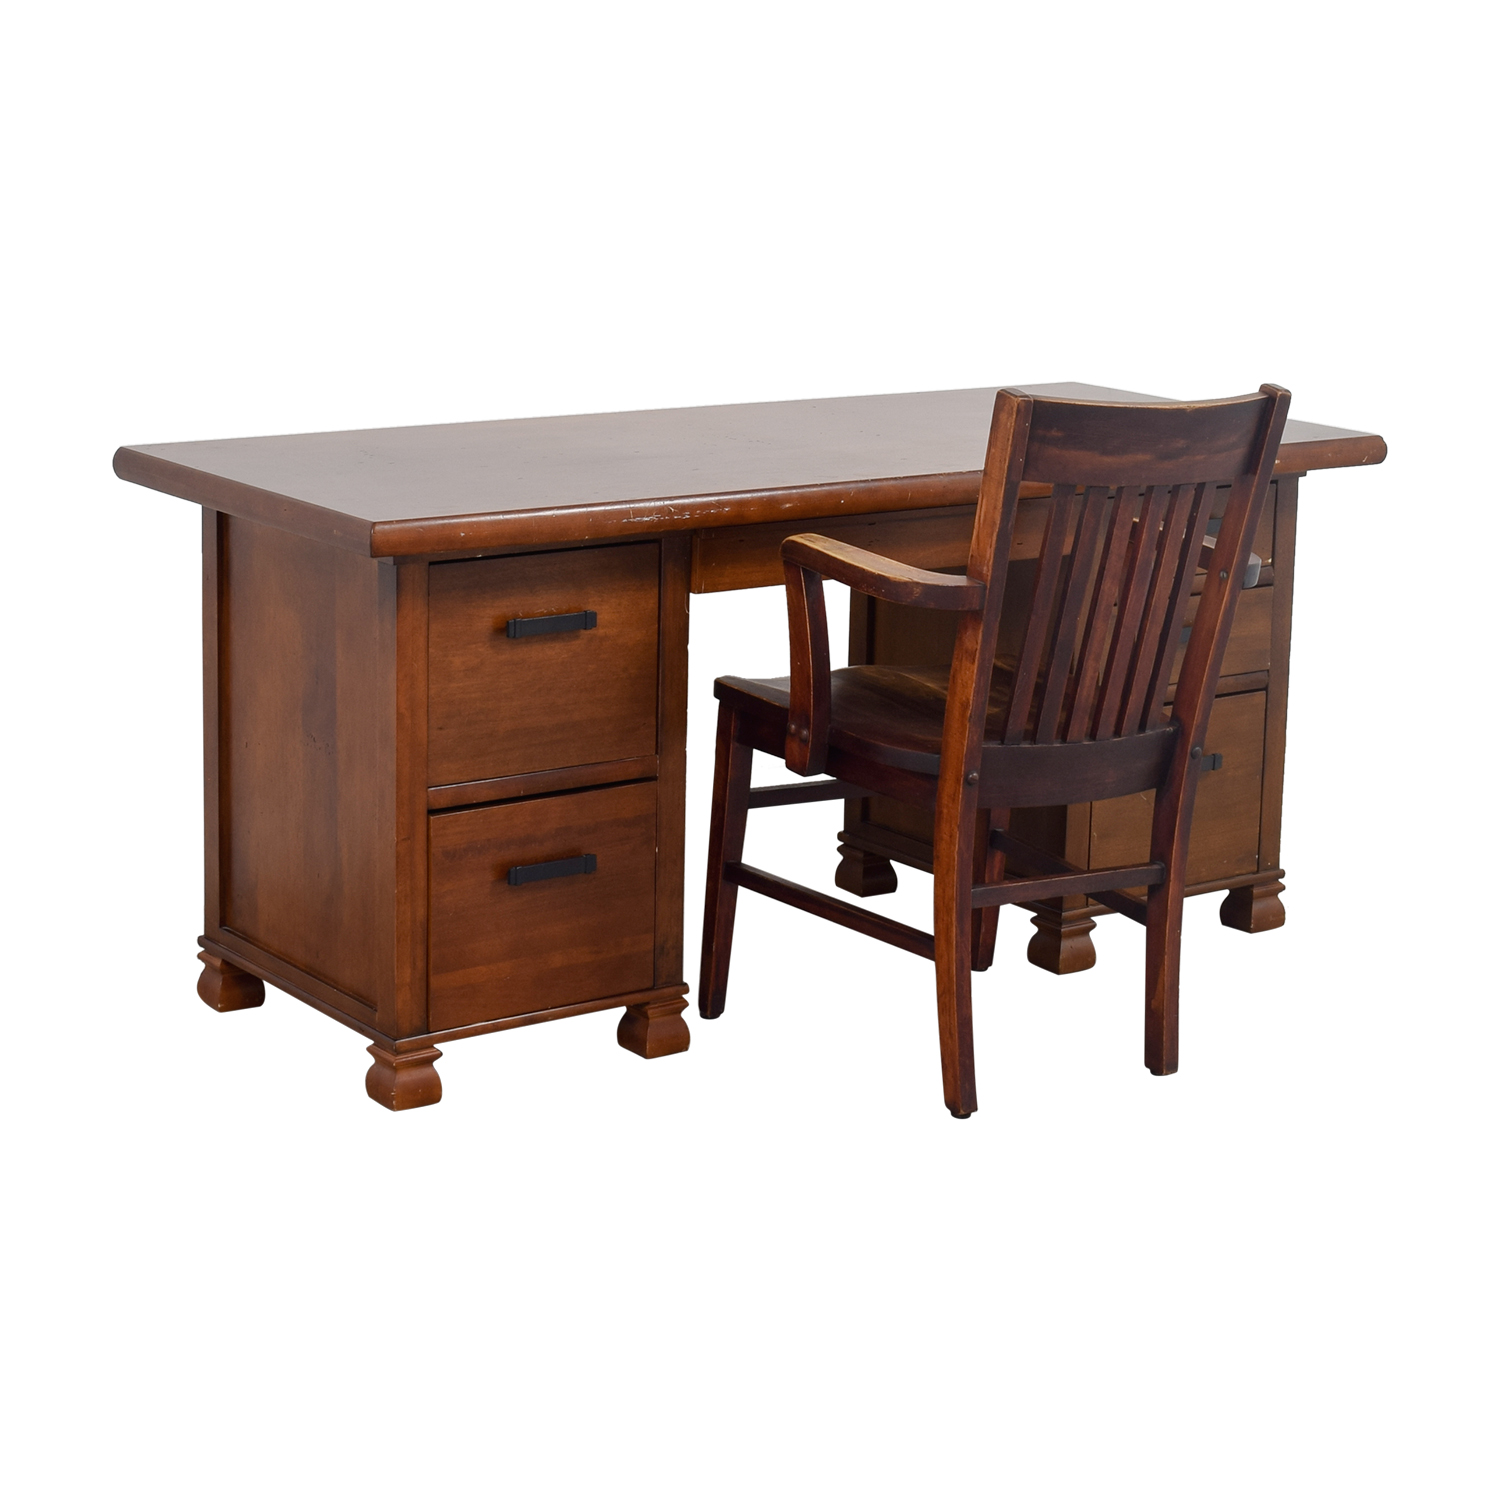 Exceptionnel ... Buy Pottery Barn Wooden Cherry Desk With Chair Pottery Barn Home Office  Desks ...